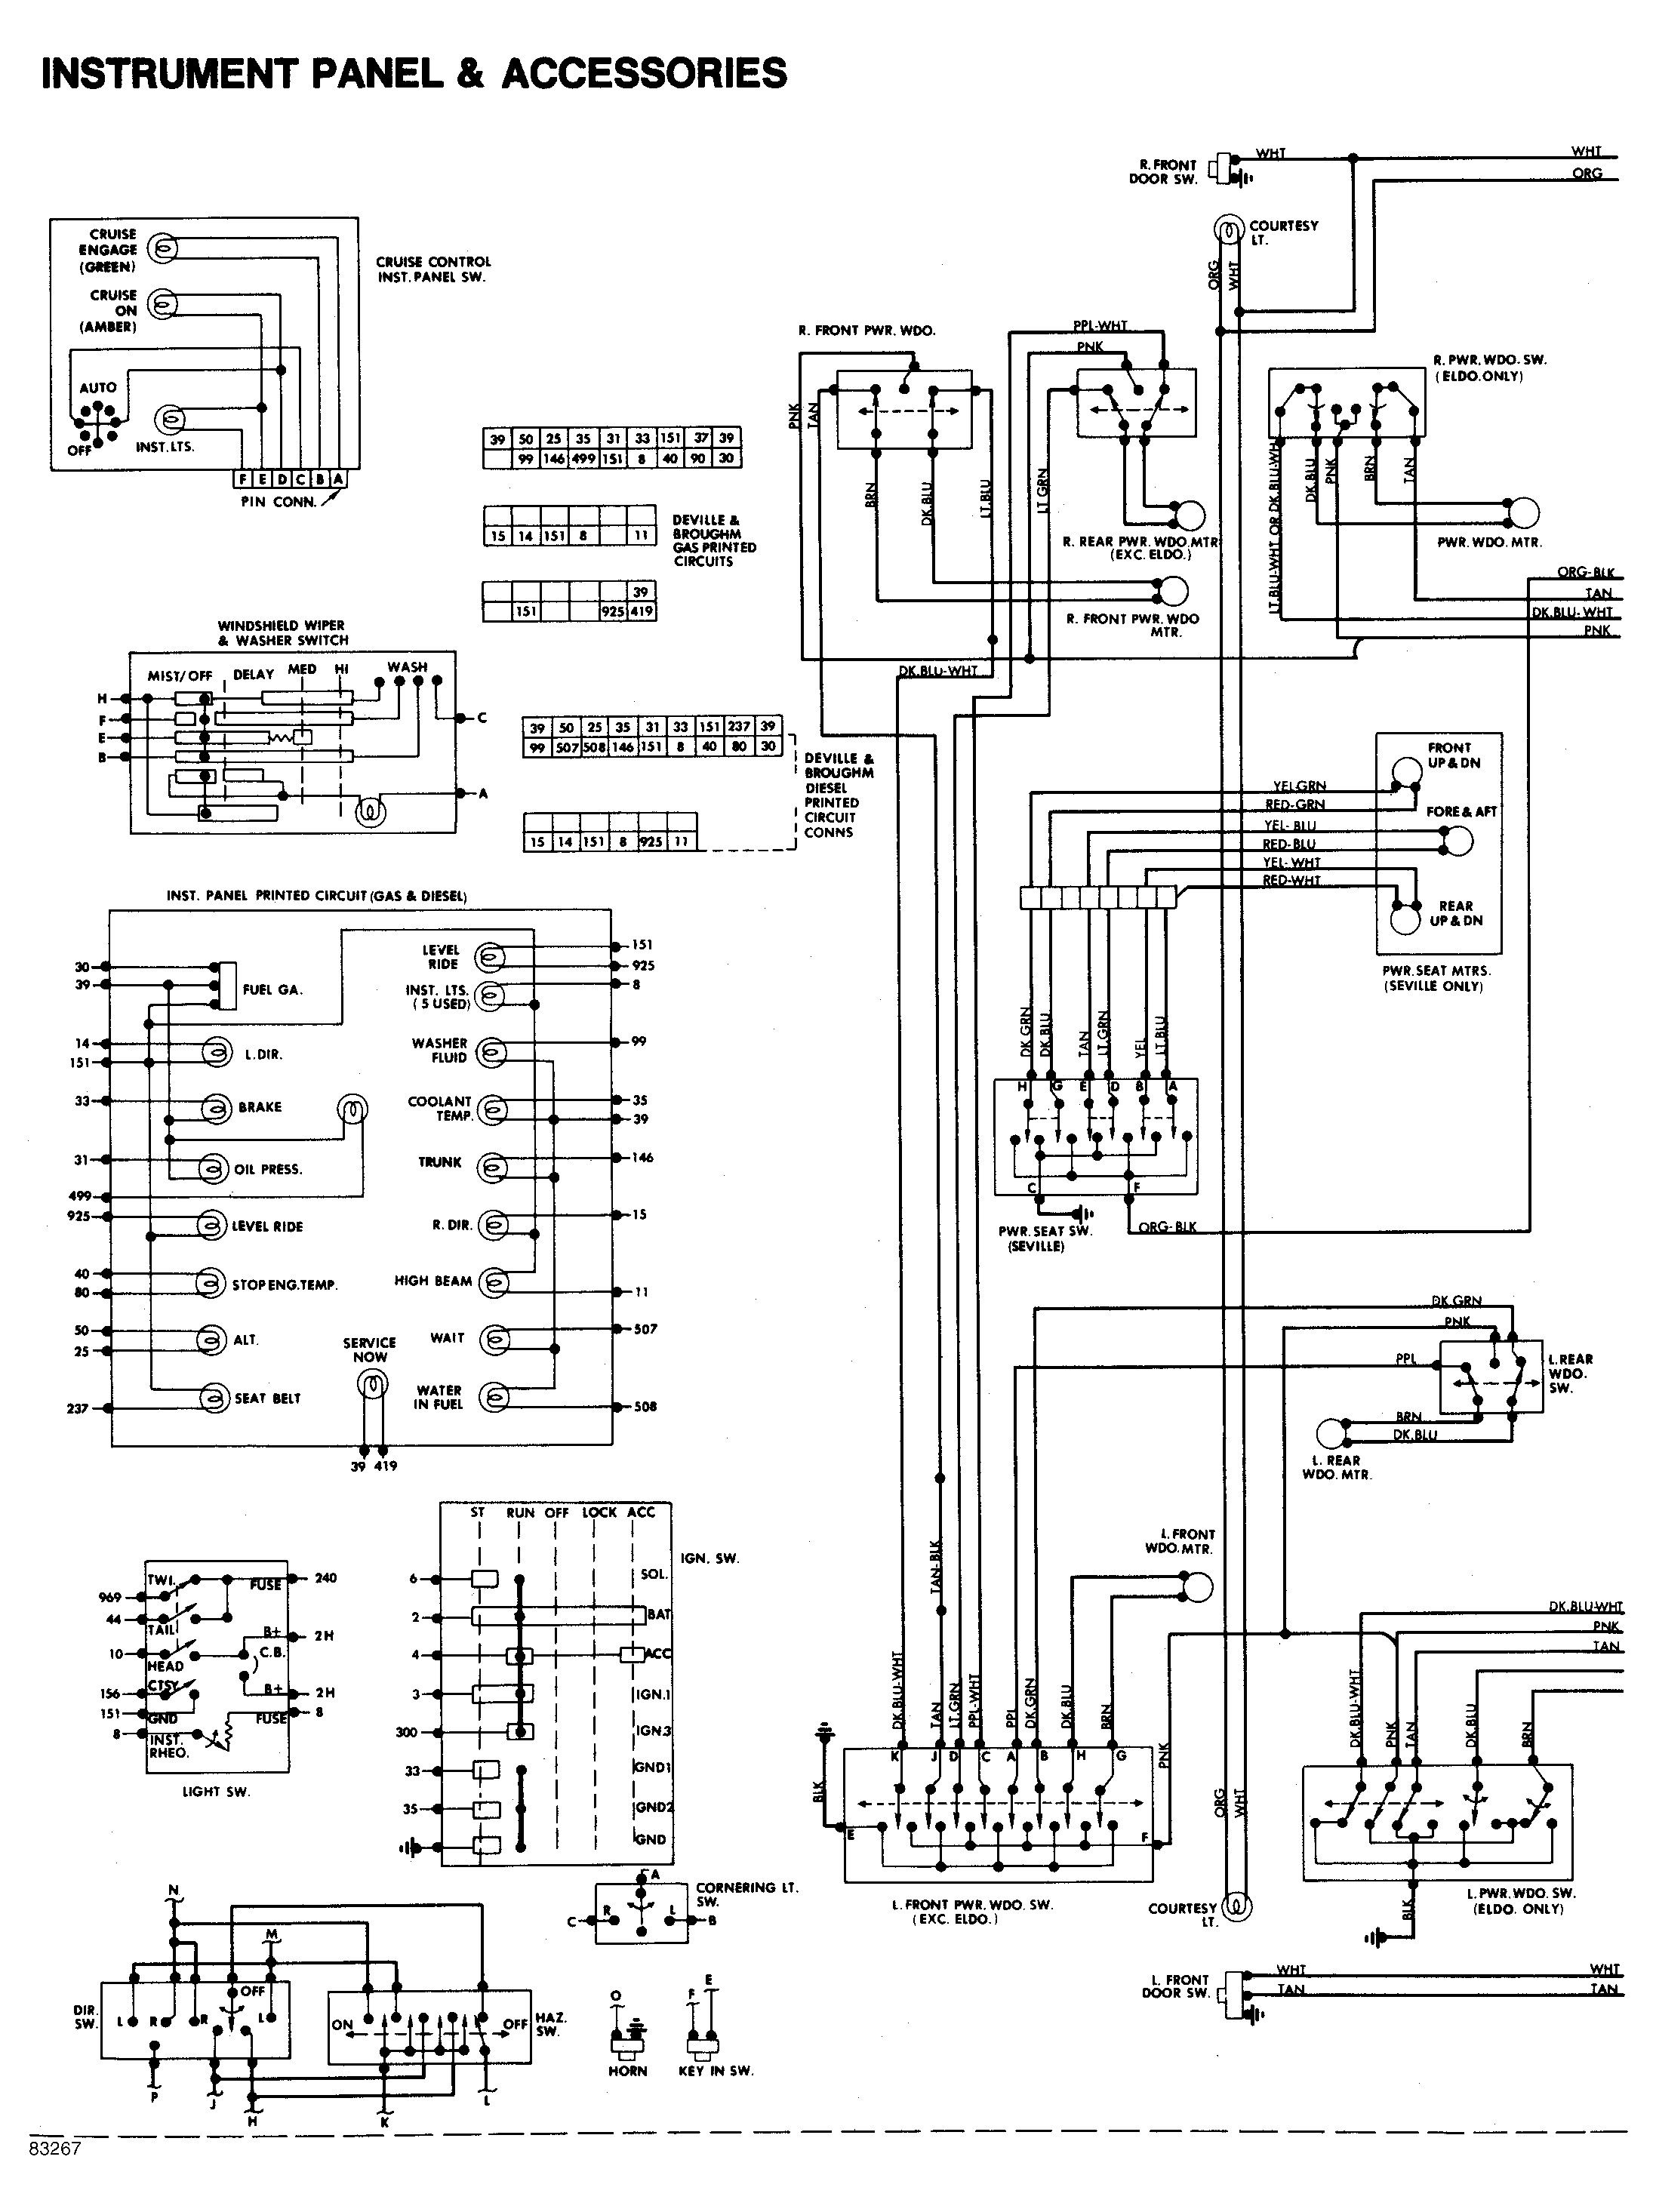 [FPWZ_2684]  778D 2000 Honda Accord Stereo Wiring Diagram | Wiring Library | Honda Accord Wiper Wiring Diagram |  | Wiring Library